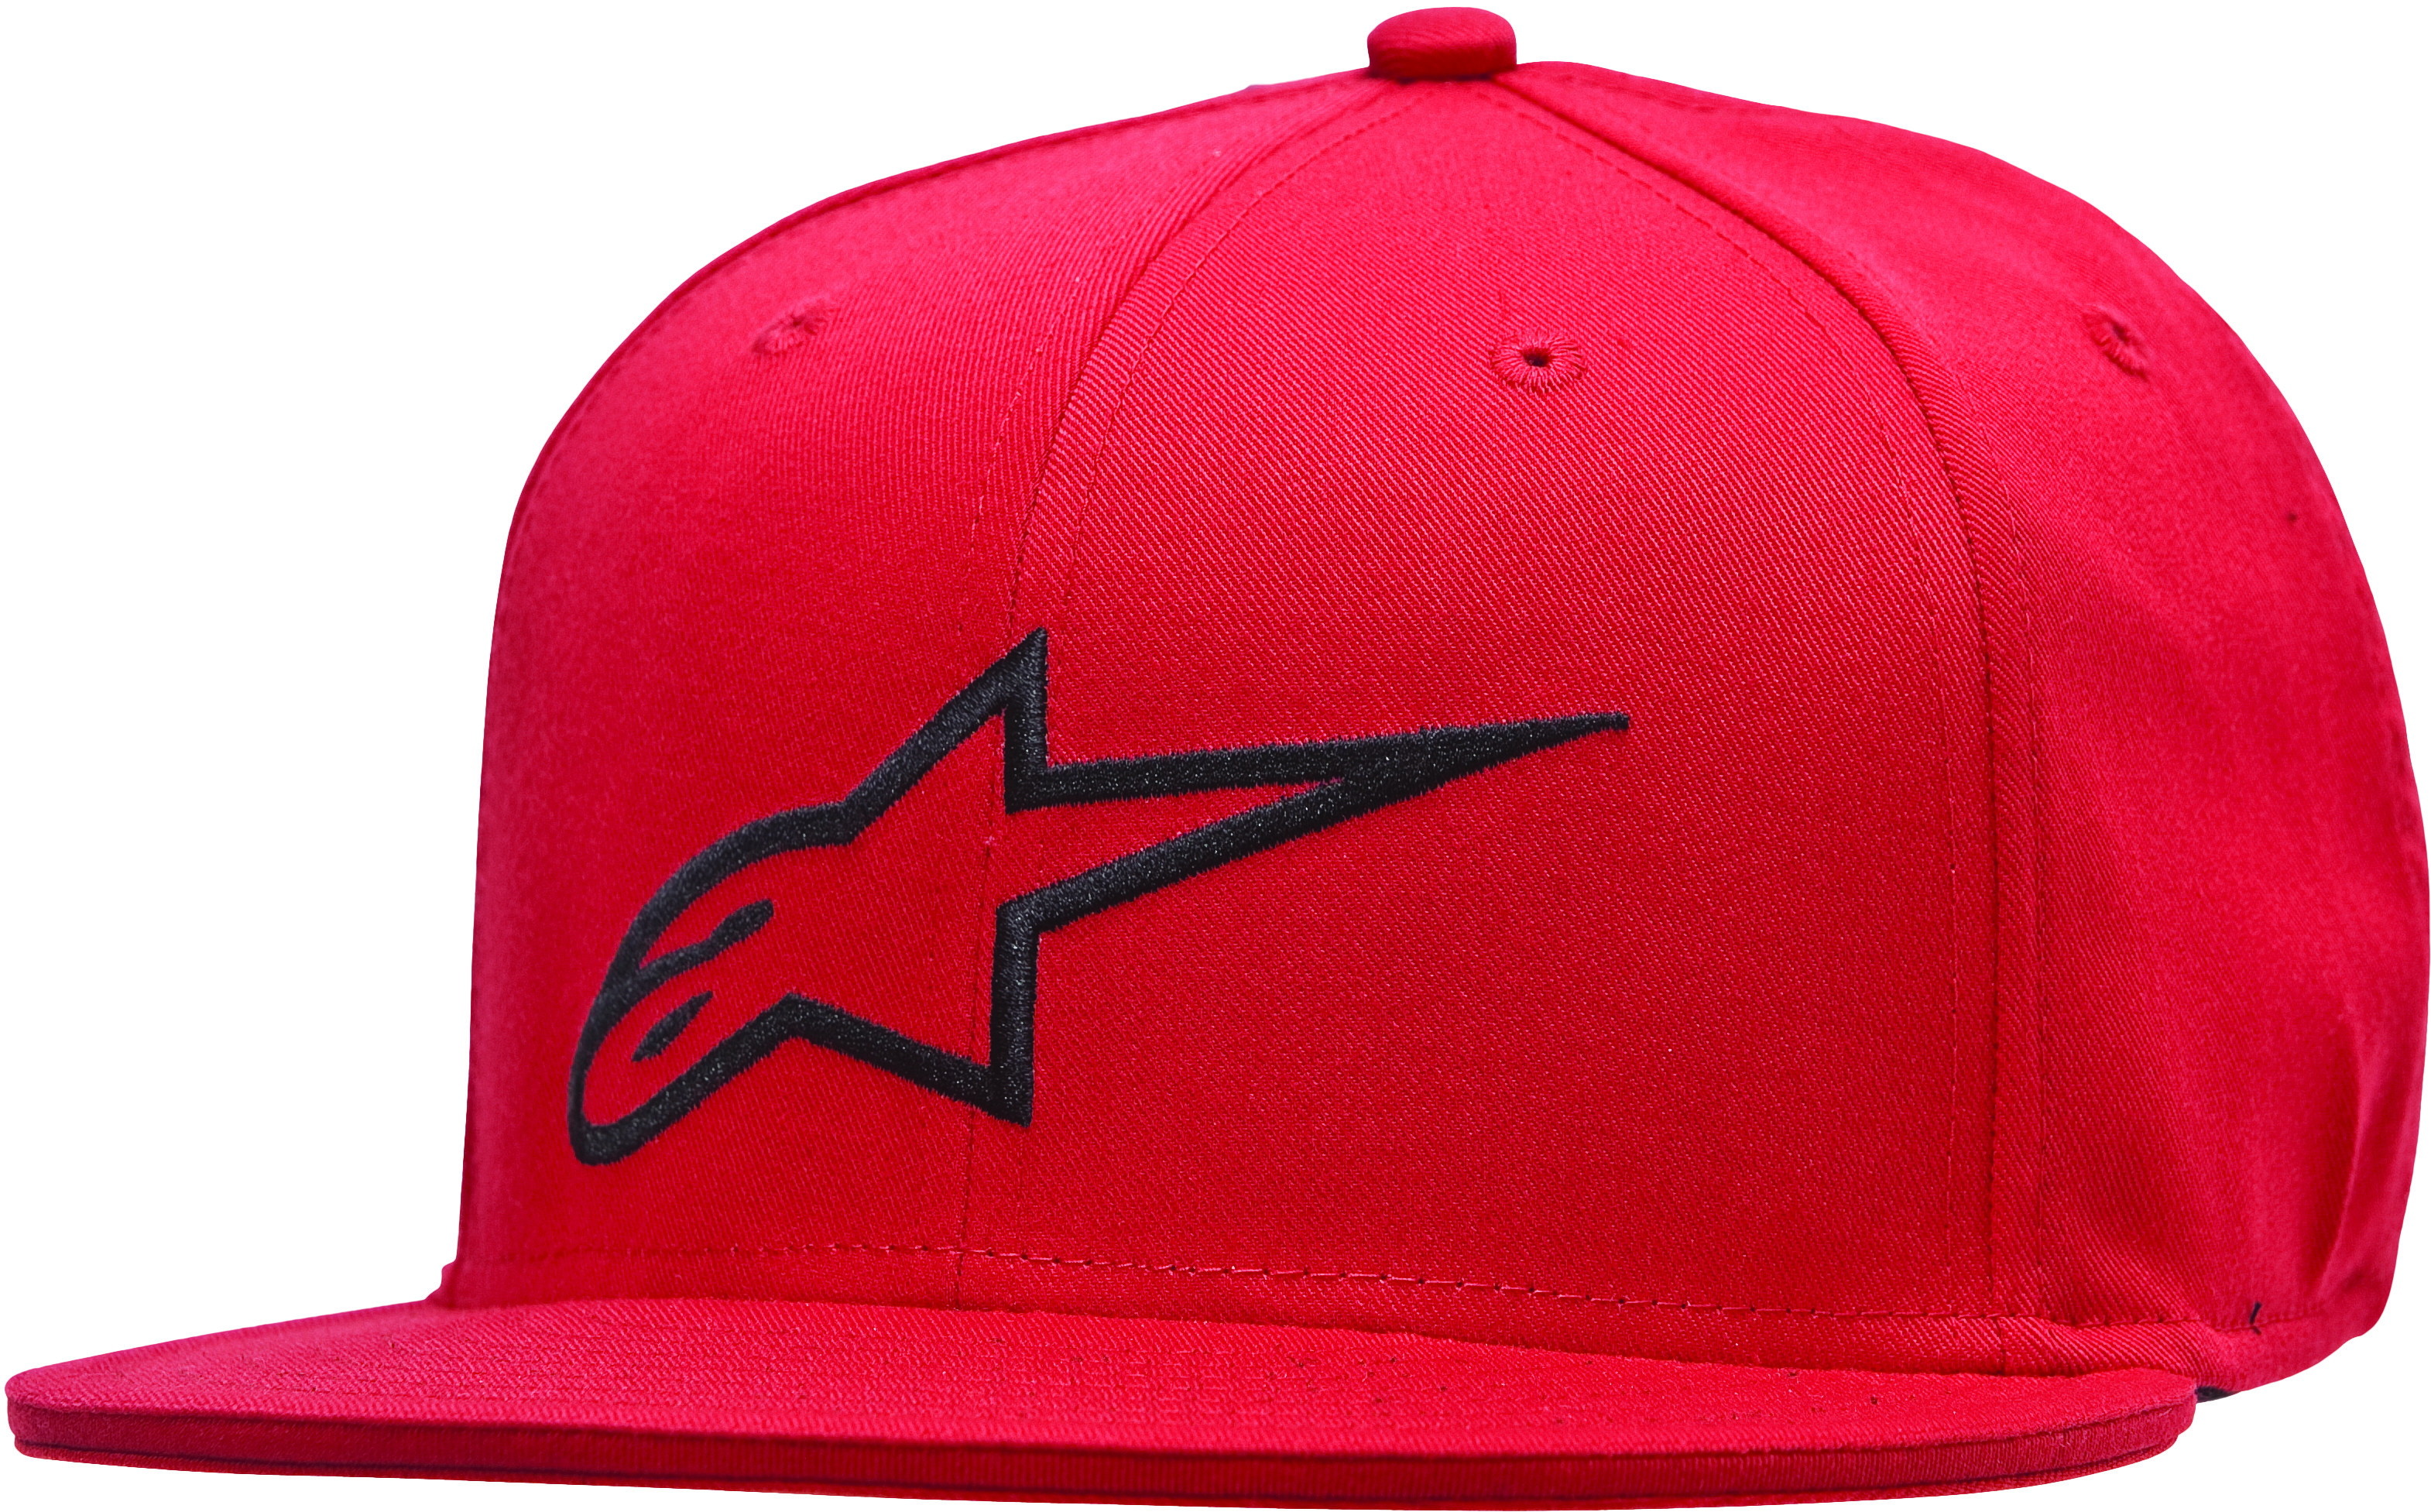 Ageless Flat Bill Hat Red/Black L/X